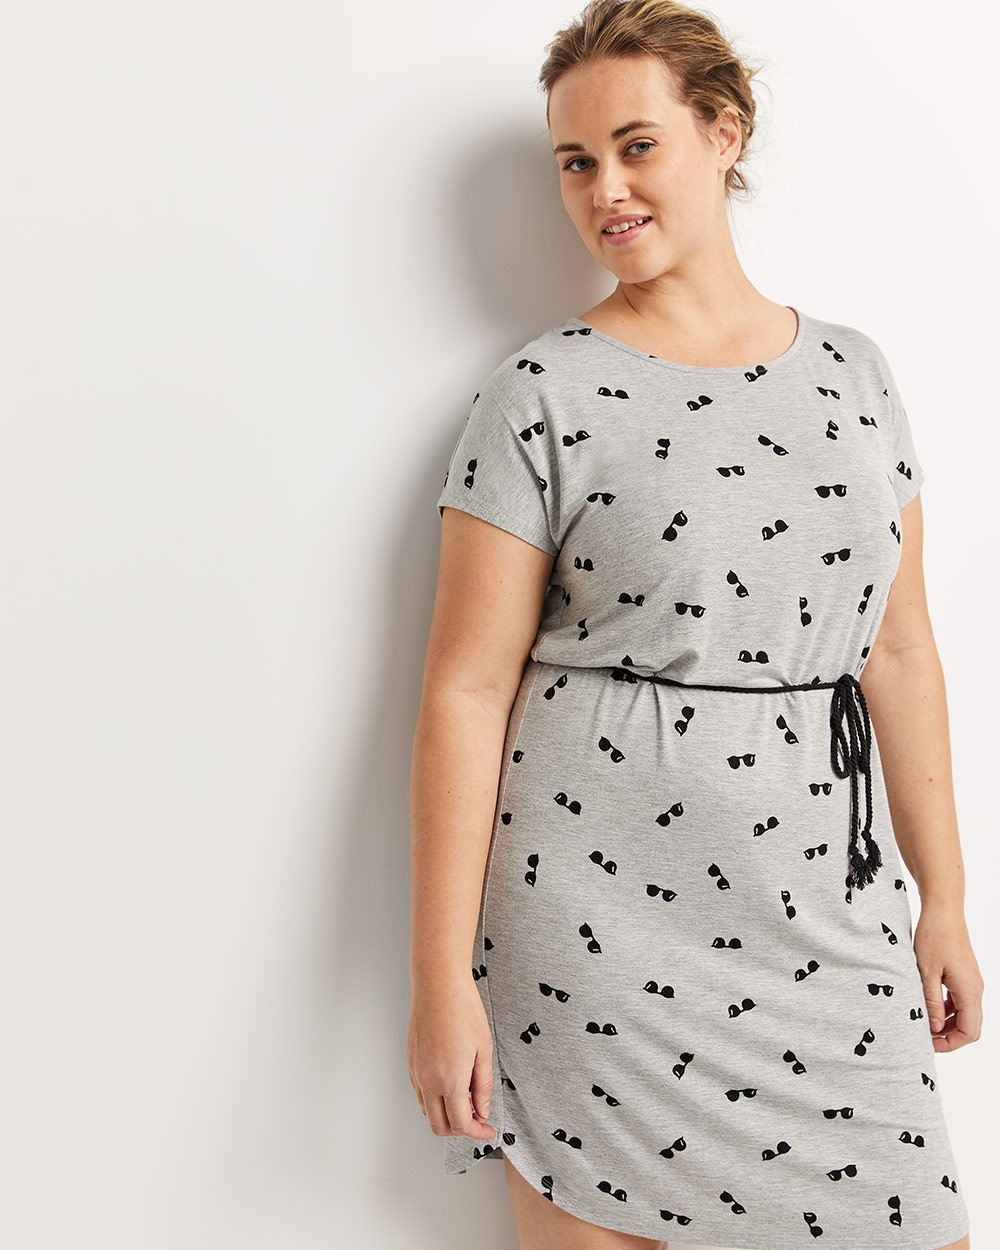 Short Sleeve Printed Shift Dress with Braided Cord